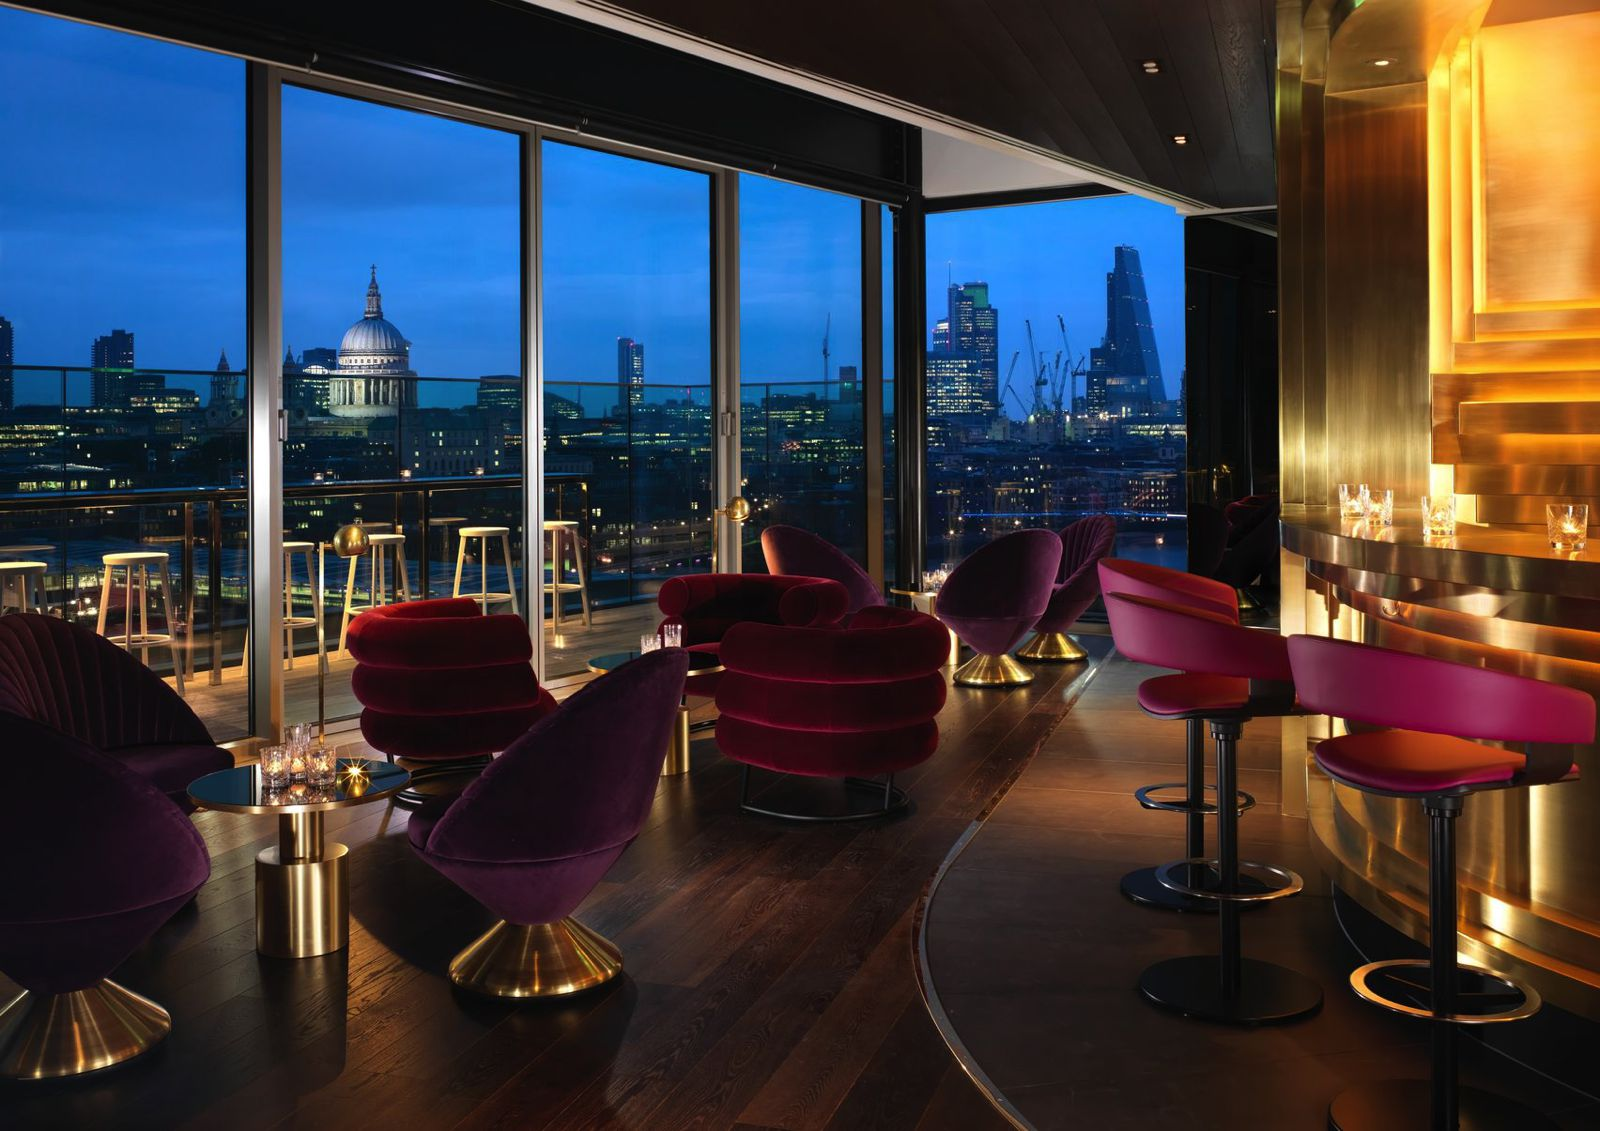 12 Iconic London Bars With Breathtaking Views Across The City (9)